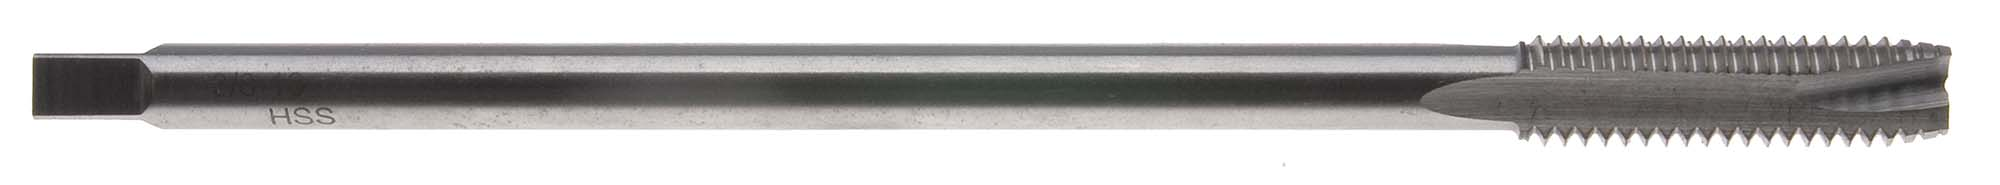 "5/16-24 x 6"" Long Spiral Point Tap with Undercut Shank, High Speed Steel"